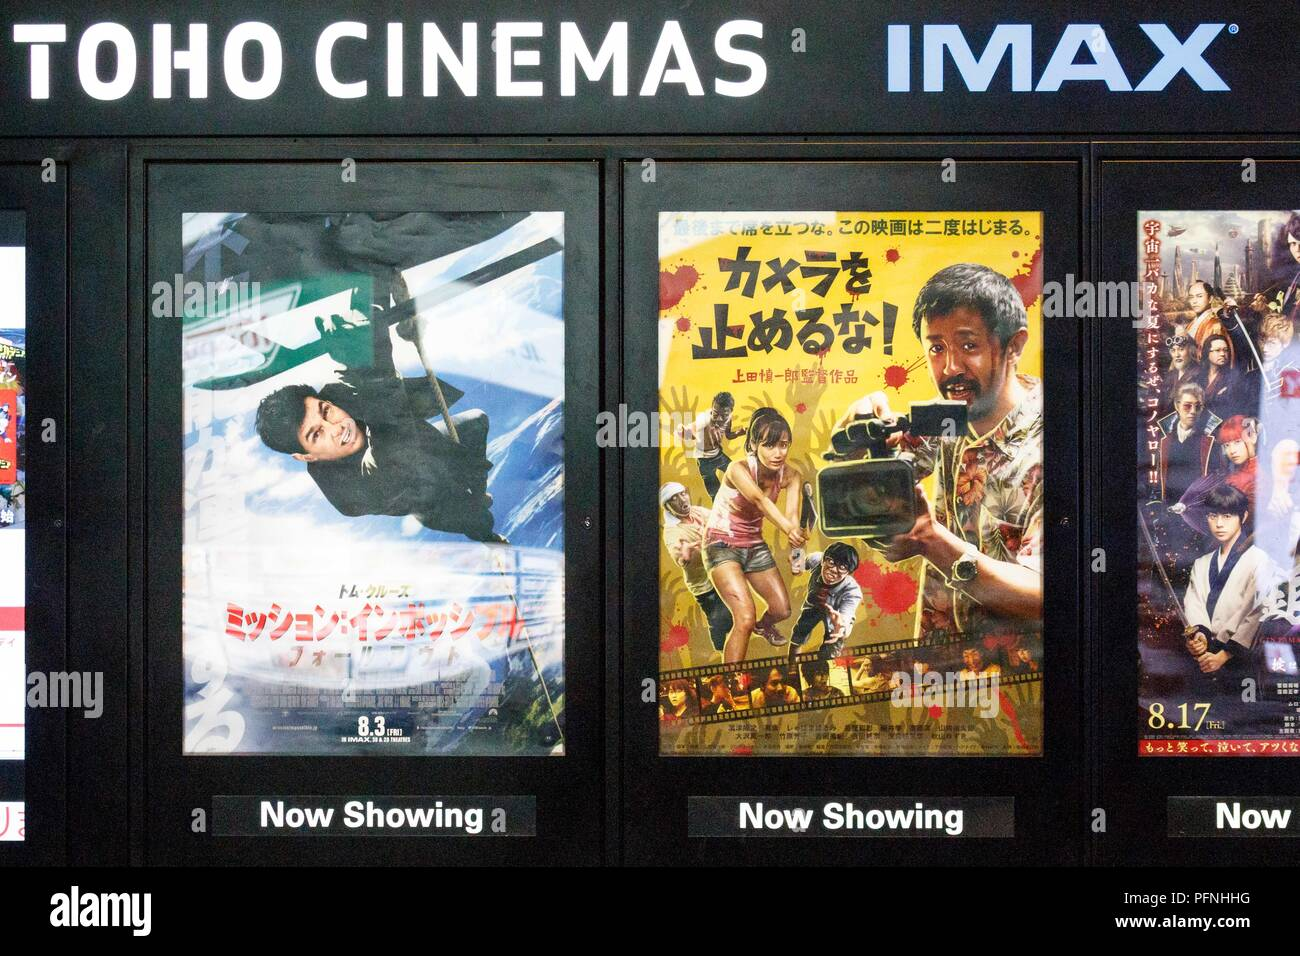 A Poster Of The Film One Cut Of The Dead Japanese Title Kamera O Tomeru Na